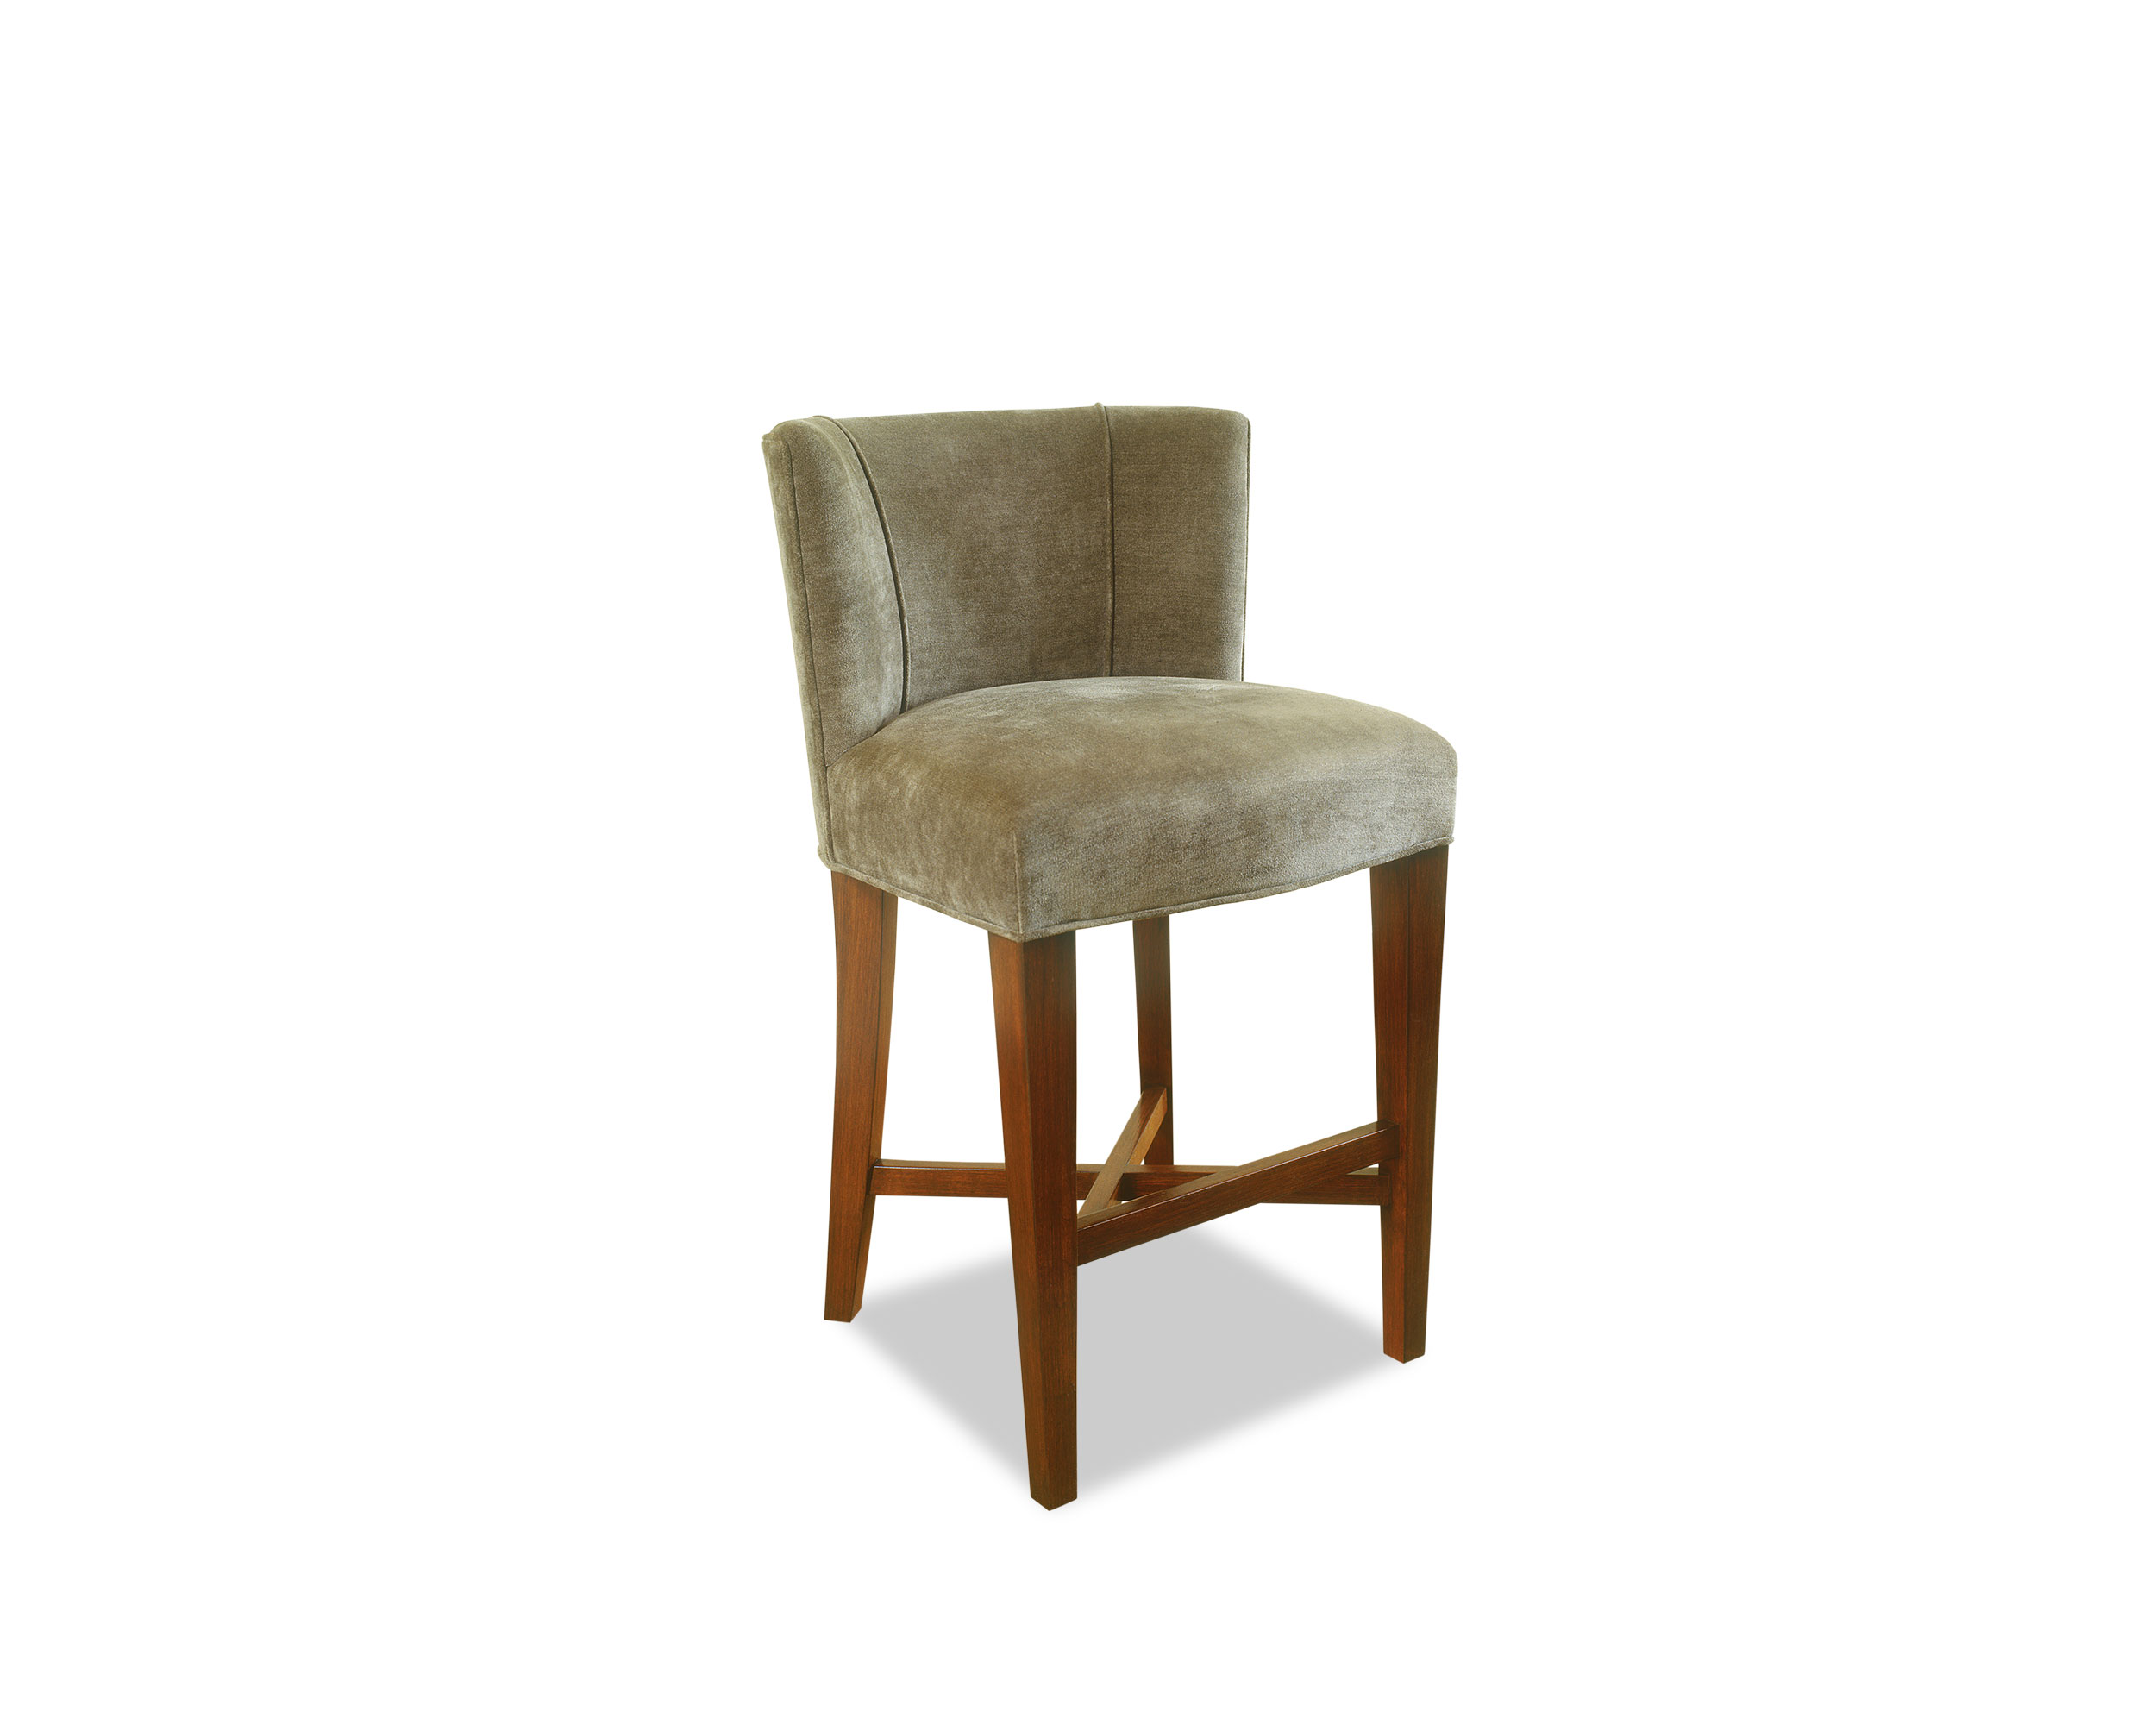 Barstools & Chairs